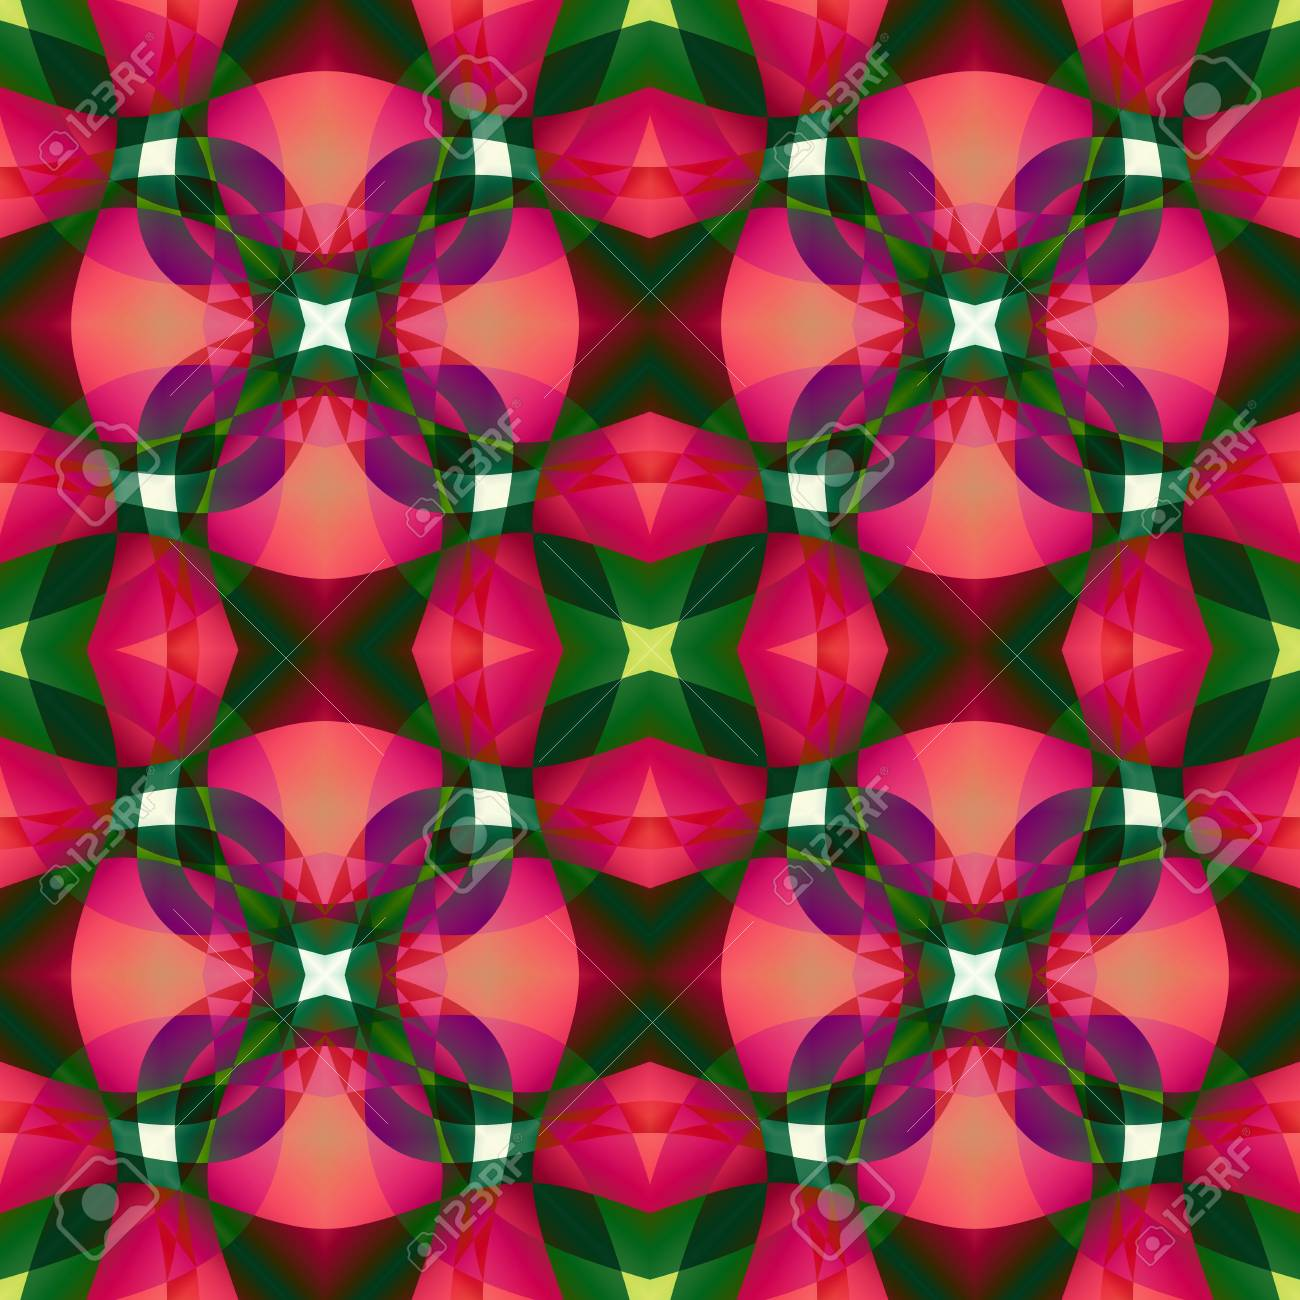 Pink Green Modern Abstract Texture Detailed Background Illustration